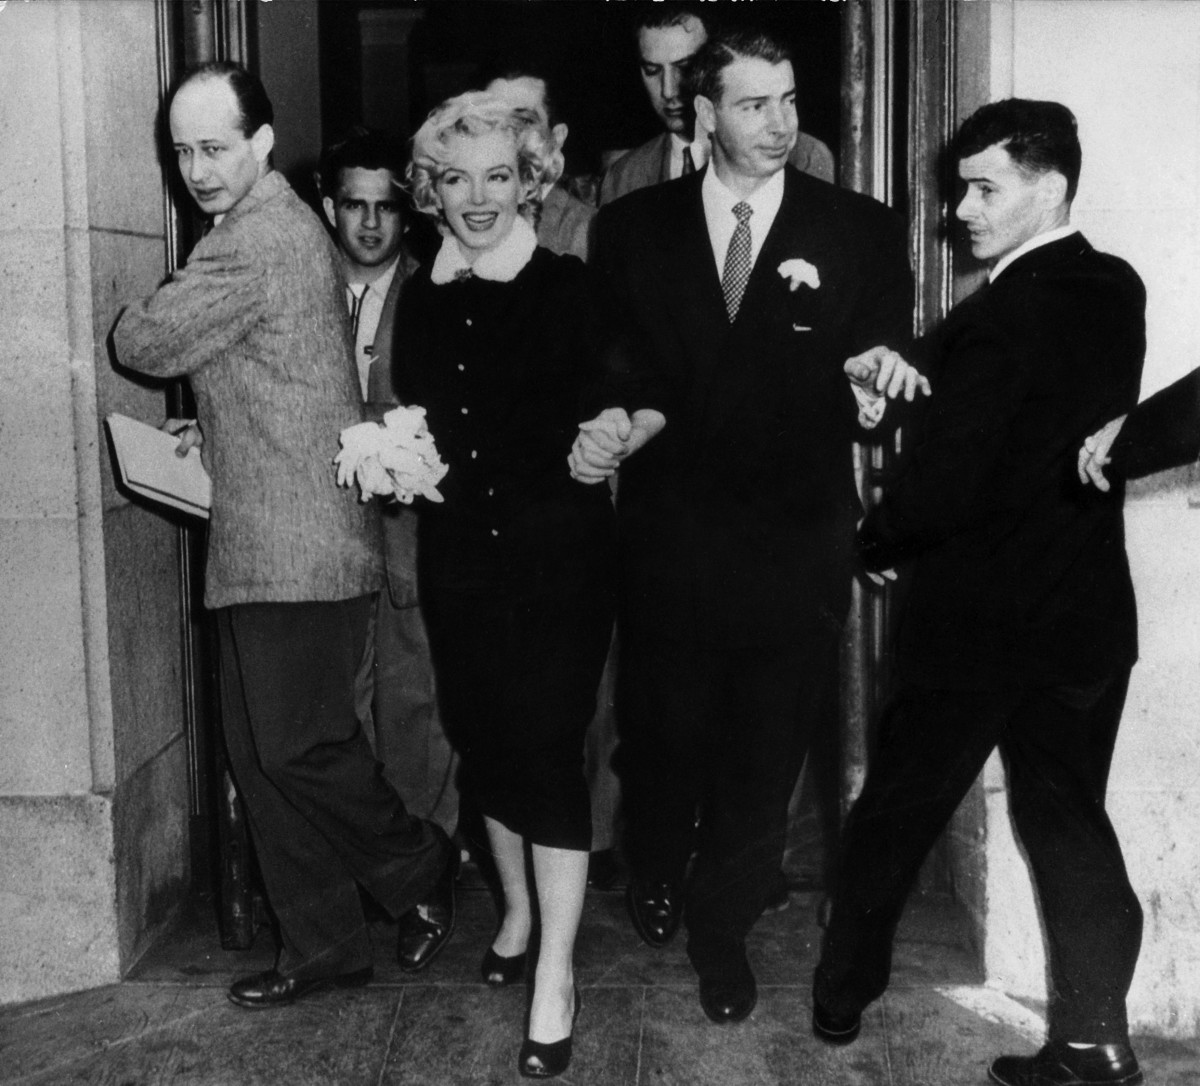 Marilyn Monroe and Joe DiMaggio leaving the town hall after their wedding on January 14, 1954, in San Francisco, California